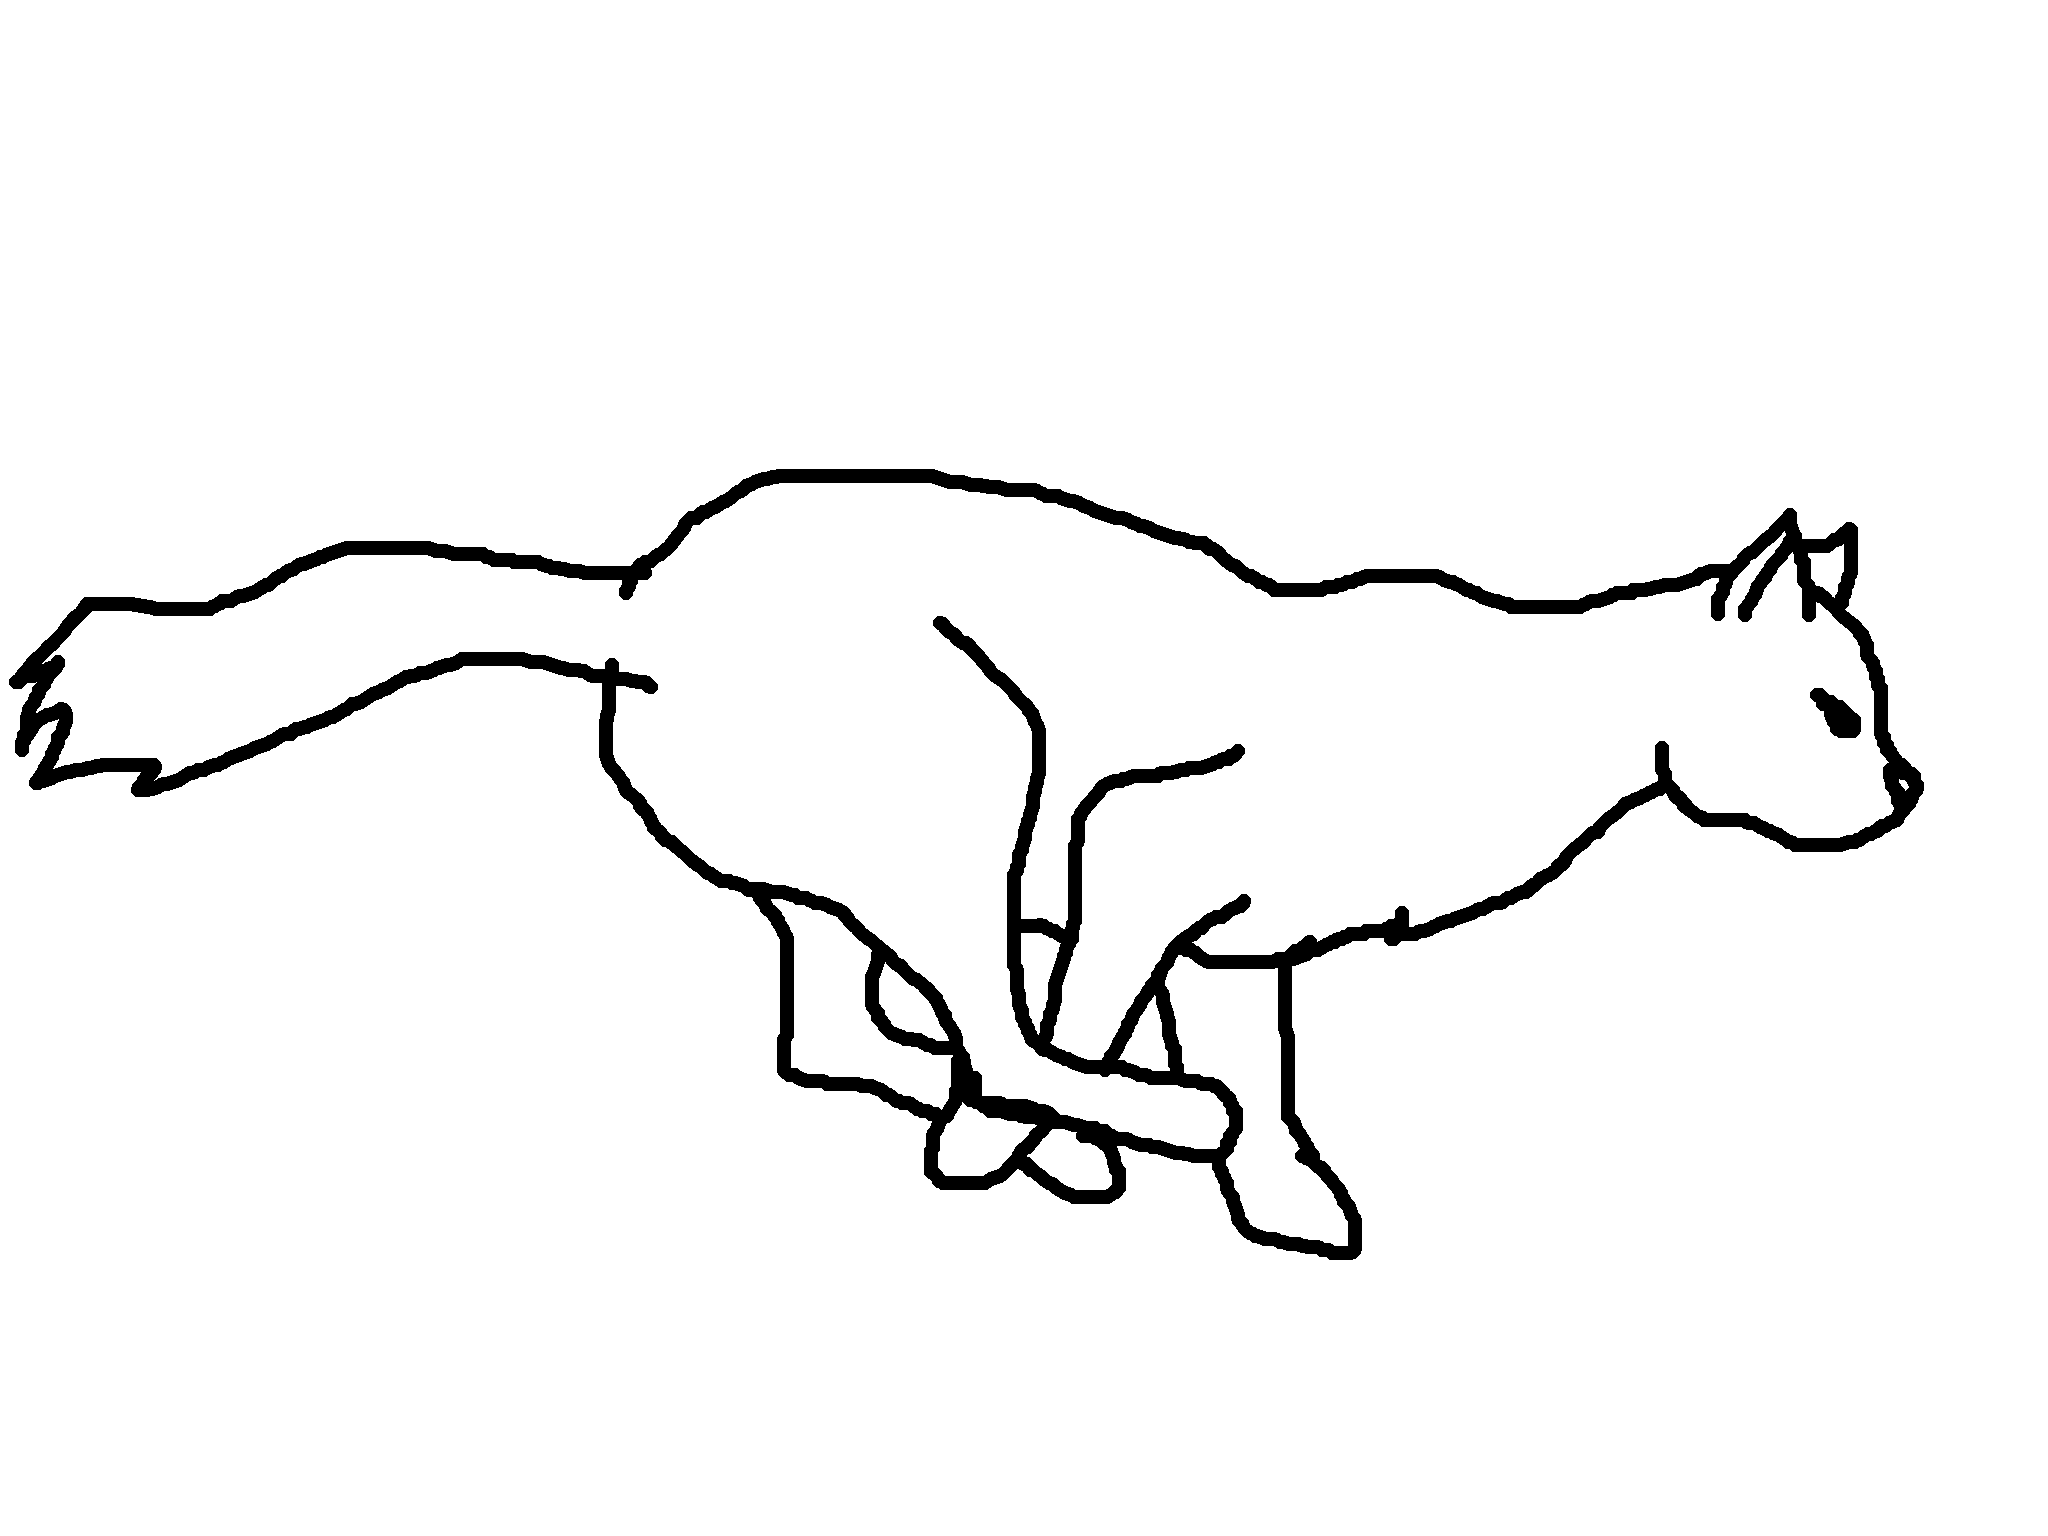 Realistic Running Cat Lineart